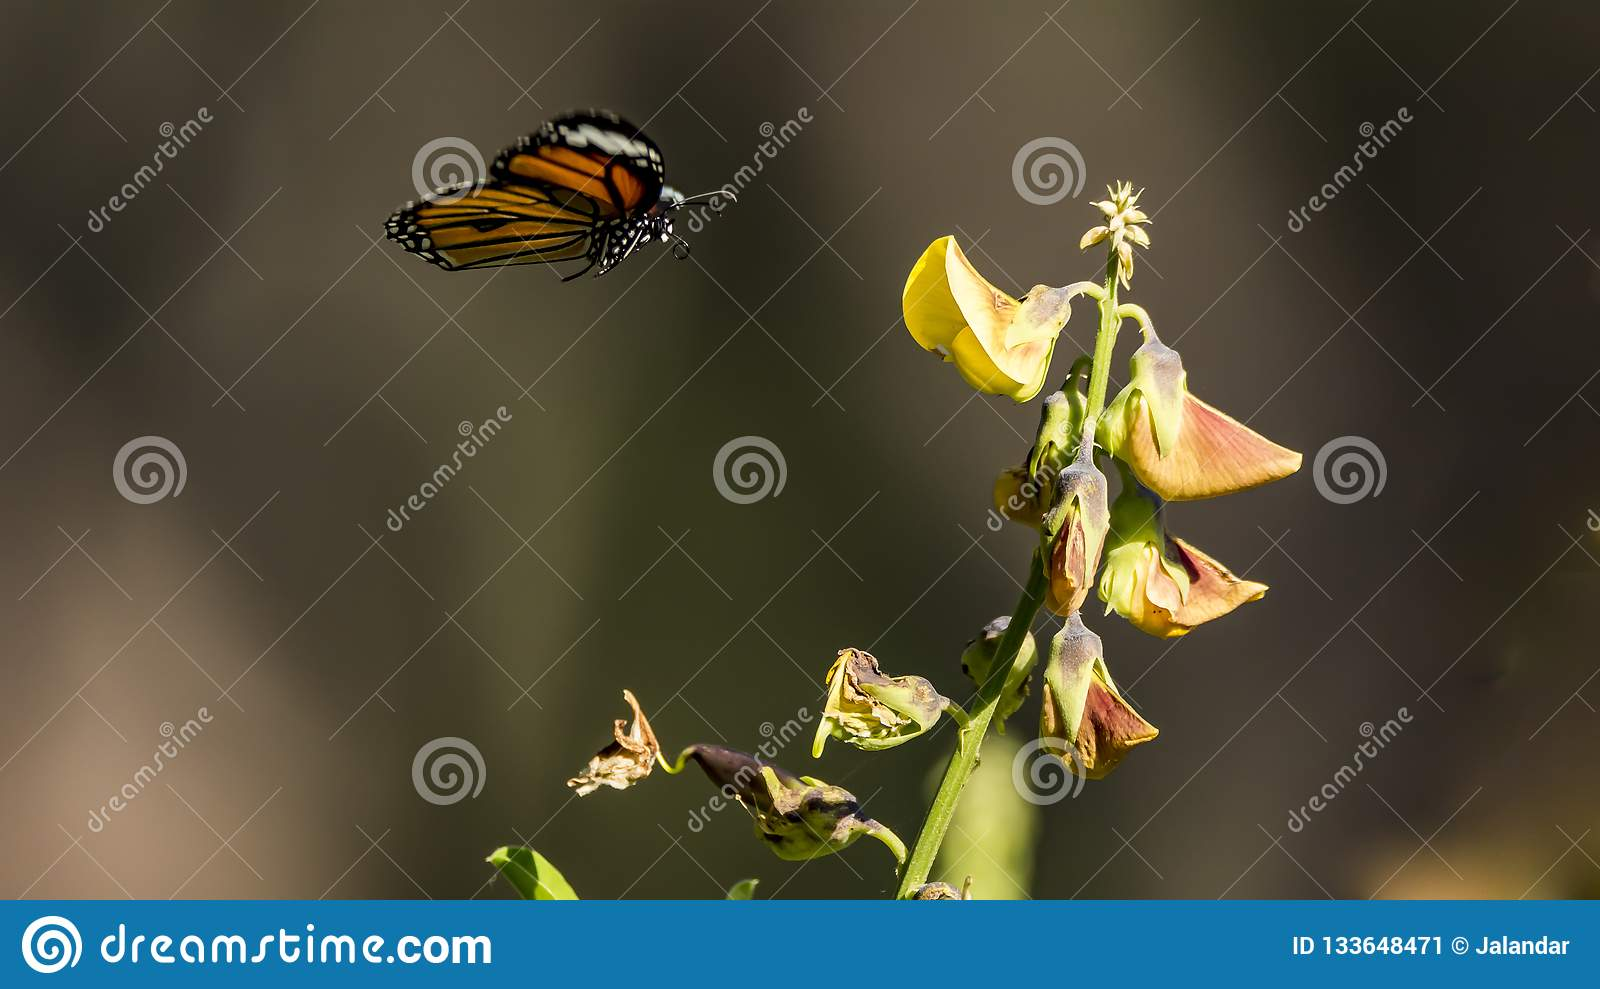 Stripped Tiger / Monarch butterfly landing with visible proboscis rolled up Danaus genutia